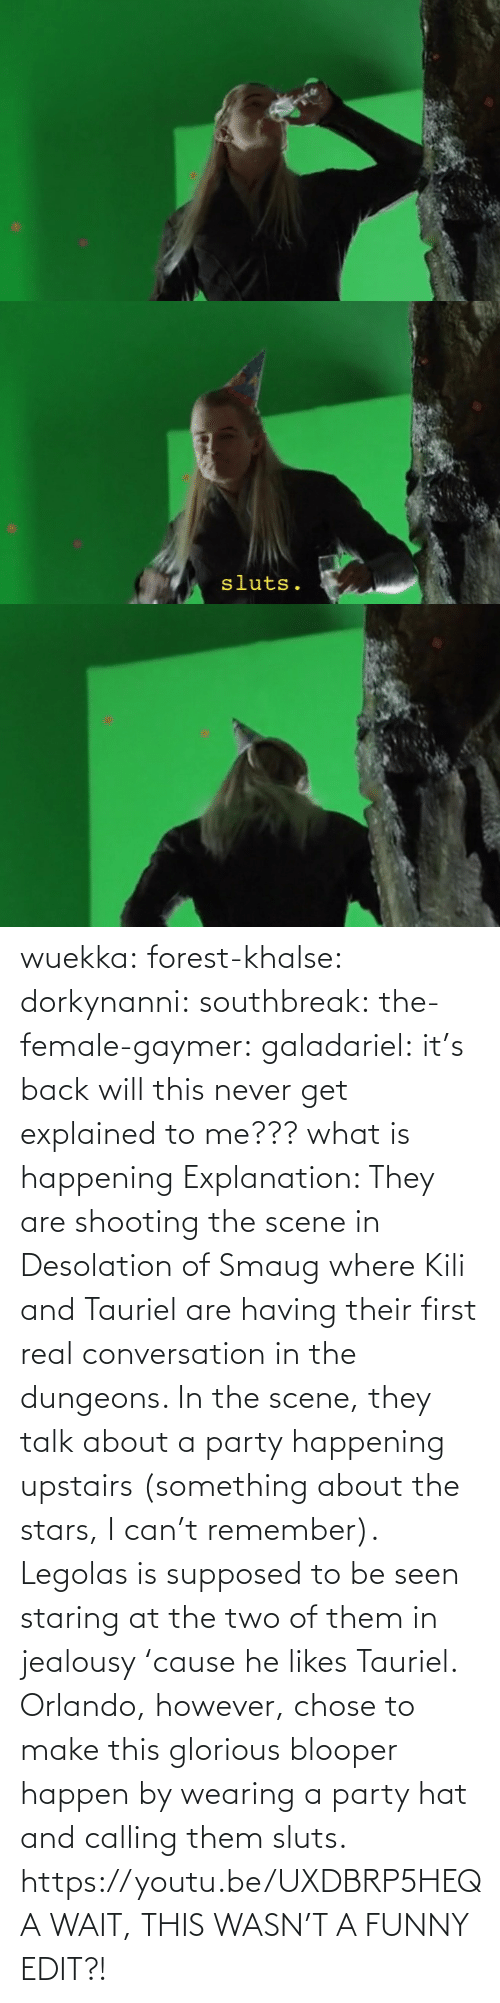 metadata: wuekka: forest-khalse:   dorkynanni:  southbreak:   the-female-gaymer:   galadariel:  it's back   will this never get explained to me???    what is happening    Explanation:  They are shooting the scene in Desolation of Smaug where Kili and Tauriel are having their first real conversation in the dungeons.  In the scene, they talk about a party happening upstairs (something about the stars, I can't remember). Legolas is supposed to be seen staring at the two of them in jealousy 'cause he likes Tauriel.  Orlando, however, chose to make this glorious blooper happen by wearing a party hat and calling them sluts.    https://youtu.be/UXDBRP5HEQA    WAIT, THIS WASN'T A FUNNY EDIT?!